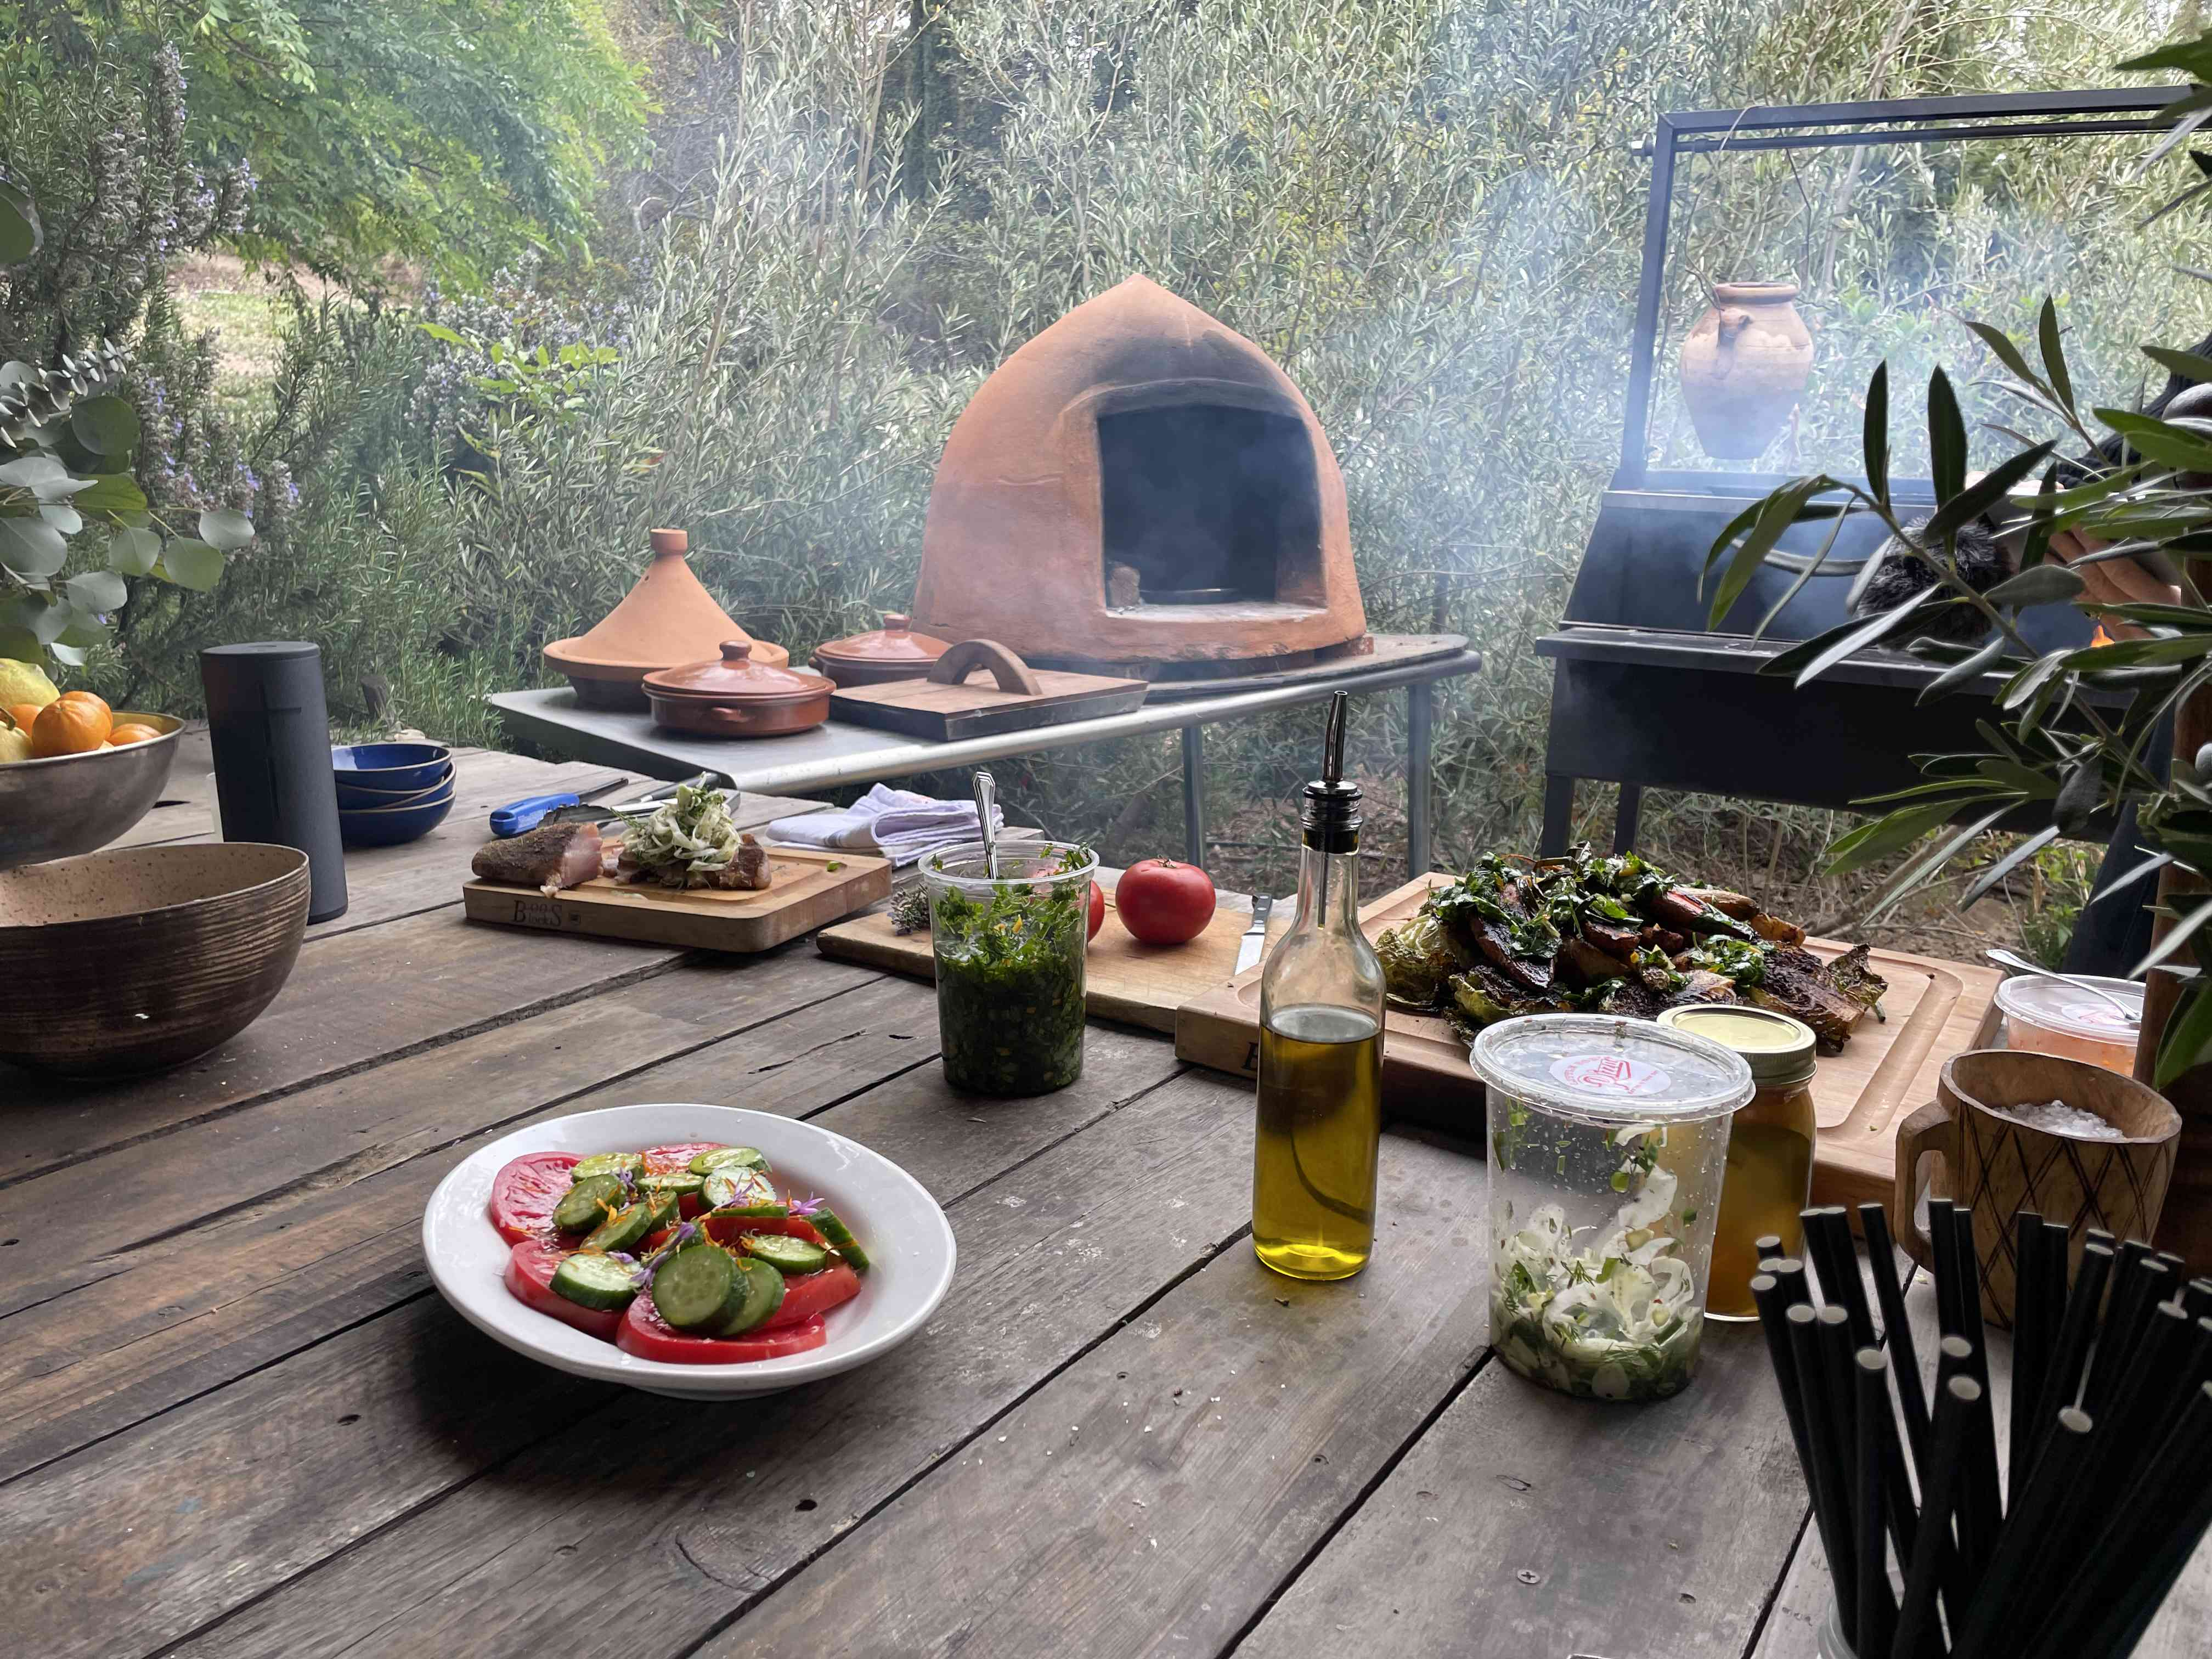 Rustic outdoor kitchen with